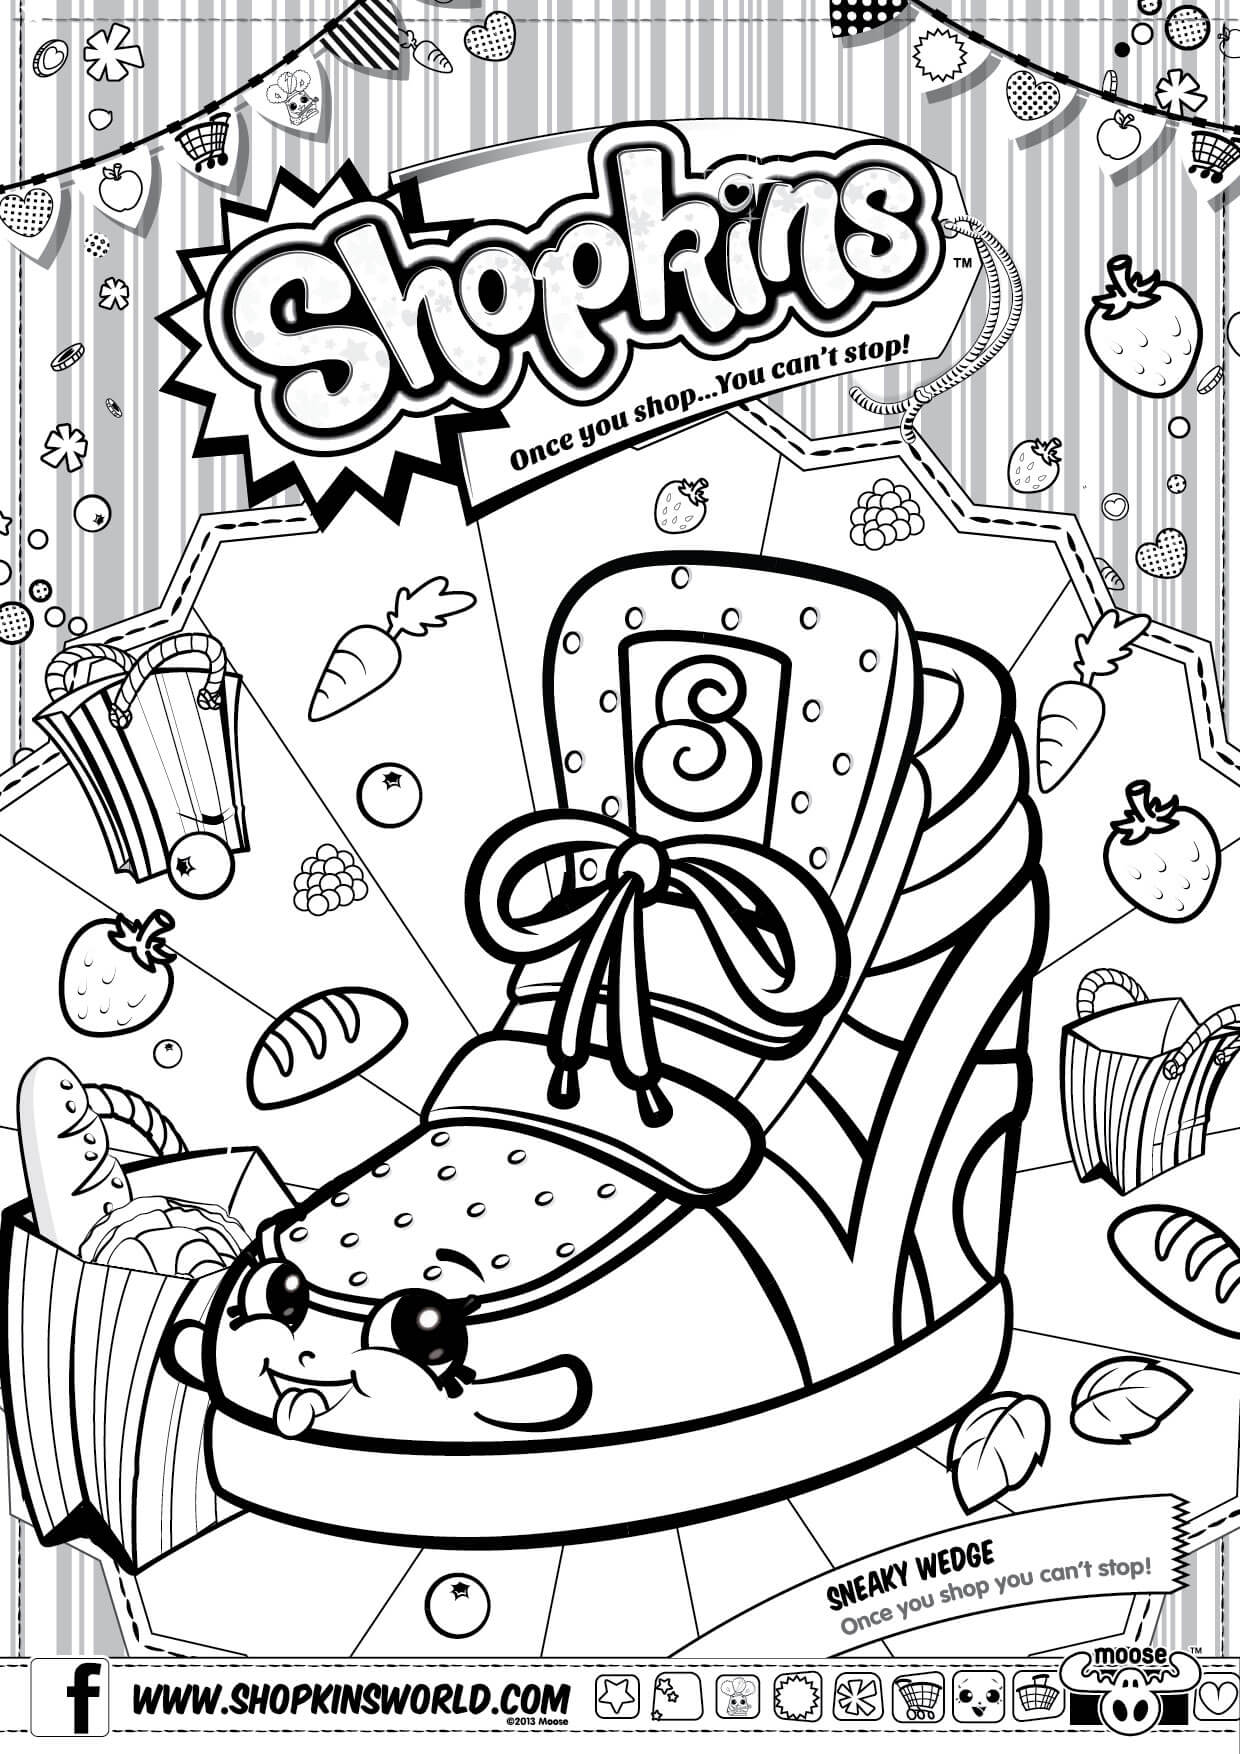 It's just an image of Astounding coloring book ideas